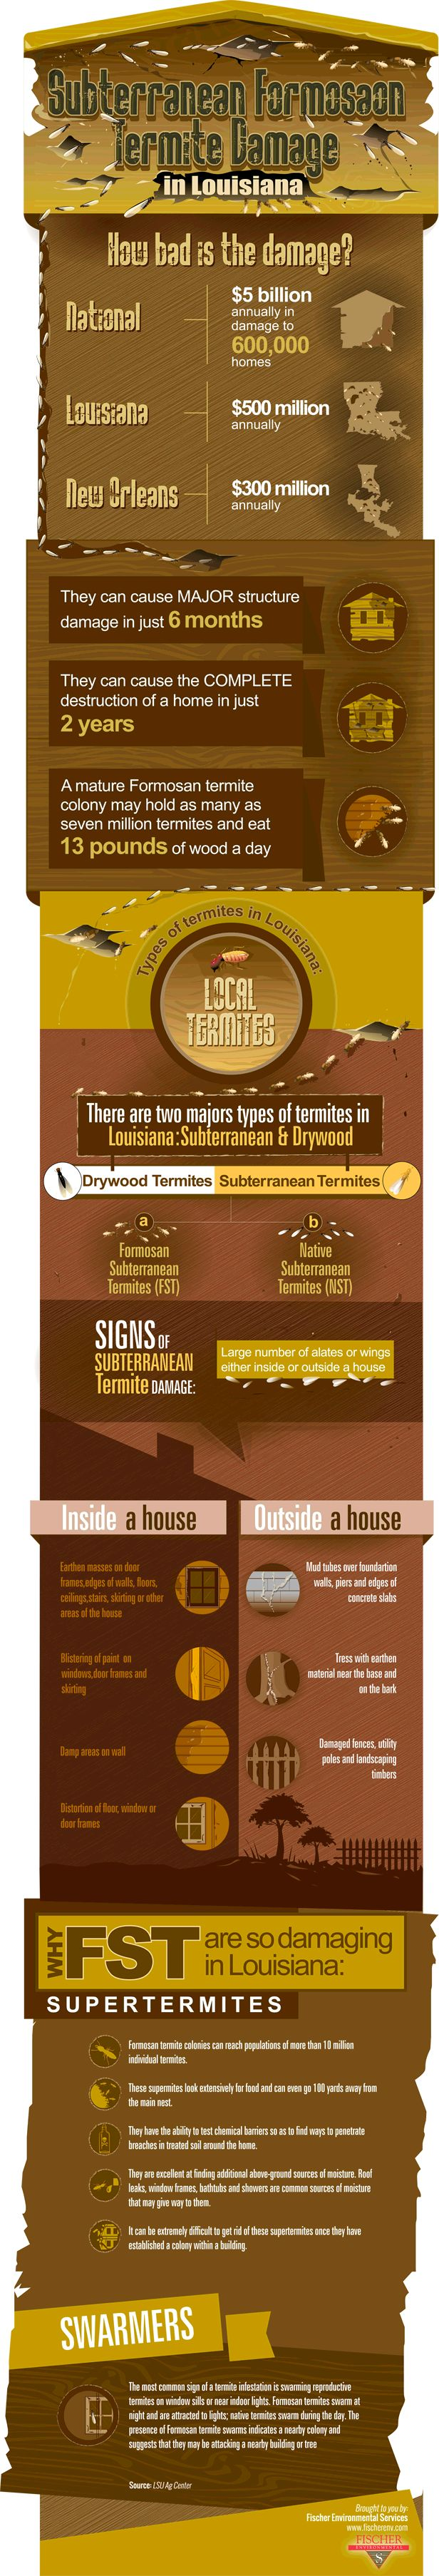 Louisiana Termite Damage - This infographic shows the damage caused by Subterranean Formosan termites in Louisiana, the types of termites found in Louisiana and common sings you might have a termite infestation. For more info, visit http://www.fischerenv.com/free-infographic-termite-damage-in-louisiana